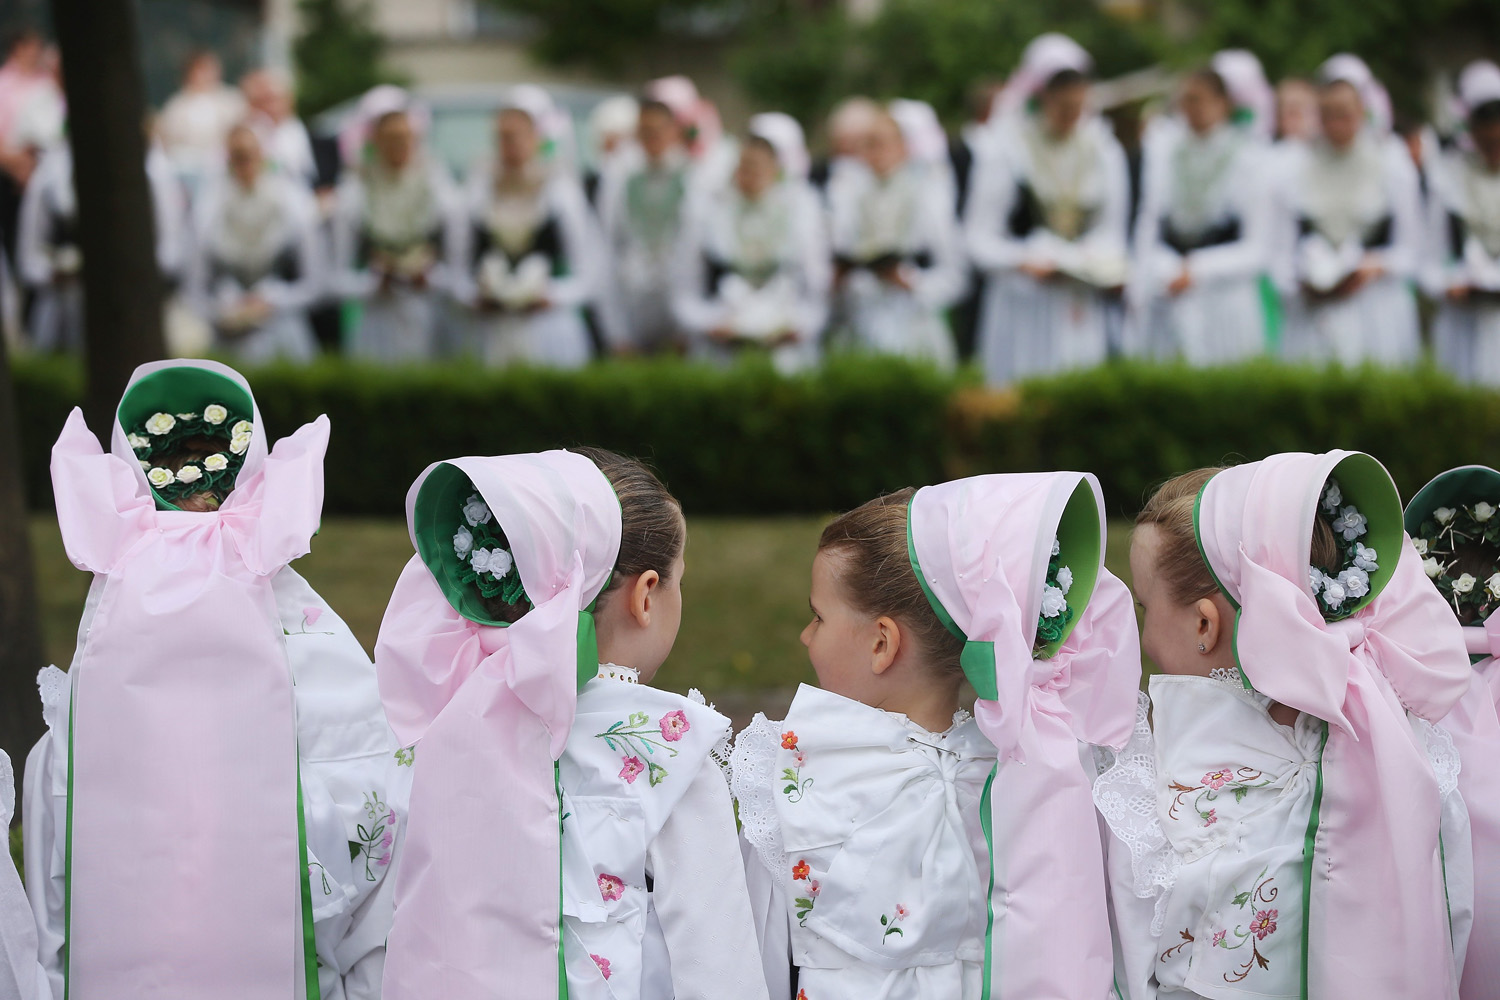 Jun. 19, 2014. Sorbian girls and young women in traditional Sorbian folk dress gather for an outdoor mass following a procession during Corpus Christi celebrations in Crostwitz, Germany.